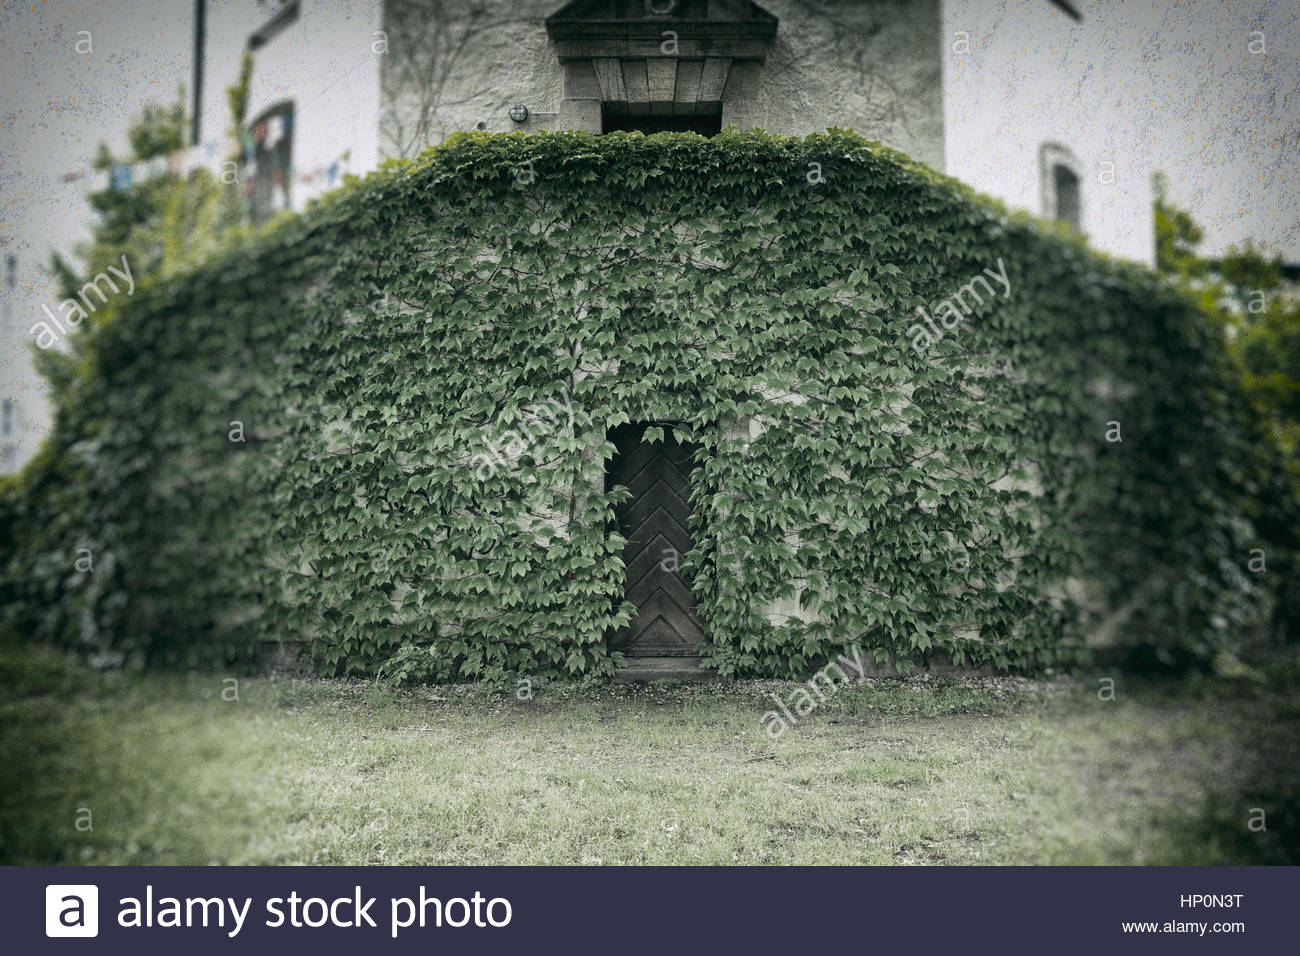 Old tower building ivy covered wooden door spooky - Stock Image